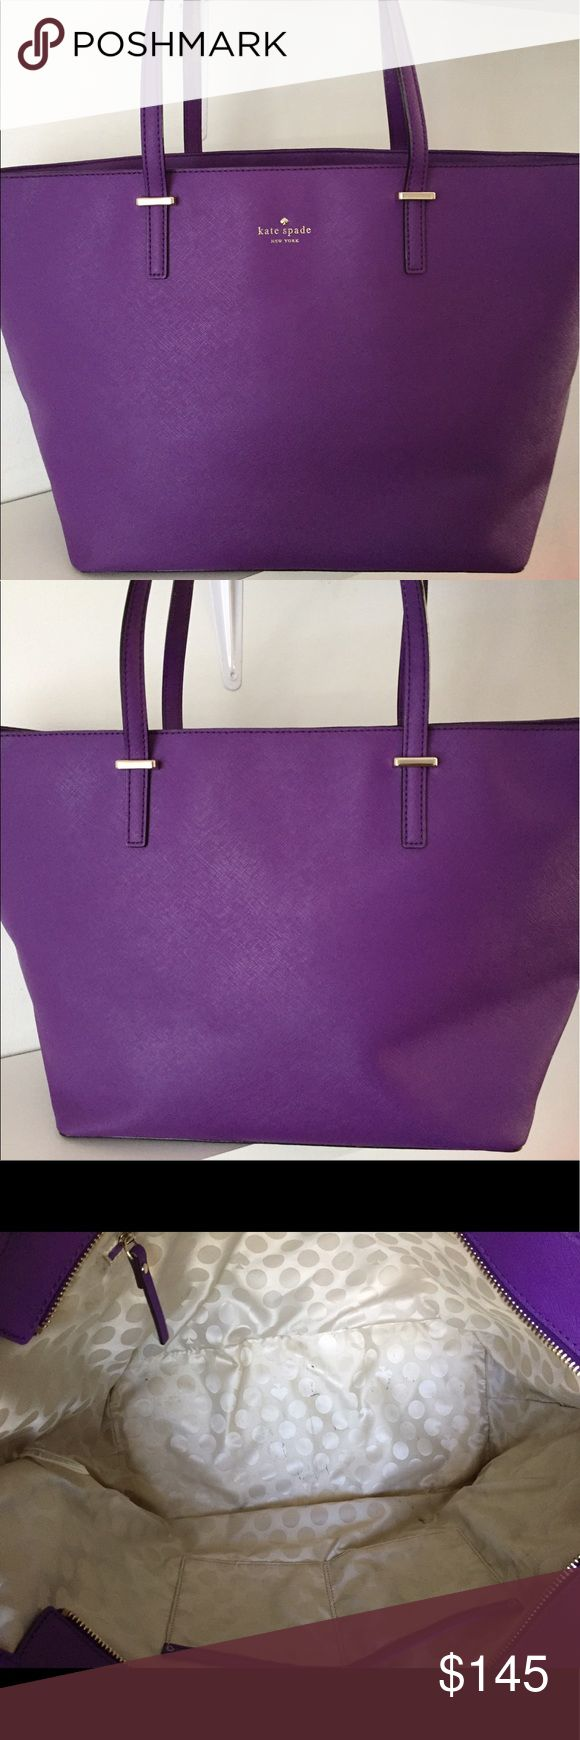 "Kate Spade Cedar Street Harmony Purple Tote Bag Kate Spade Cedar Street Harmony saffiano leather purple tote bag! This bag measures 11"" in height, 19"" in length, and it has a 9.5"" strap drop. The interior has a zip pocket and two other multifunctional pockets. Gorgeous bag in great condition! kate spade Bags Totes"